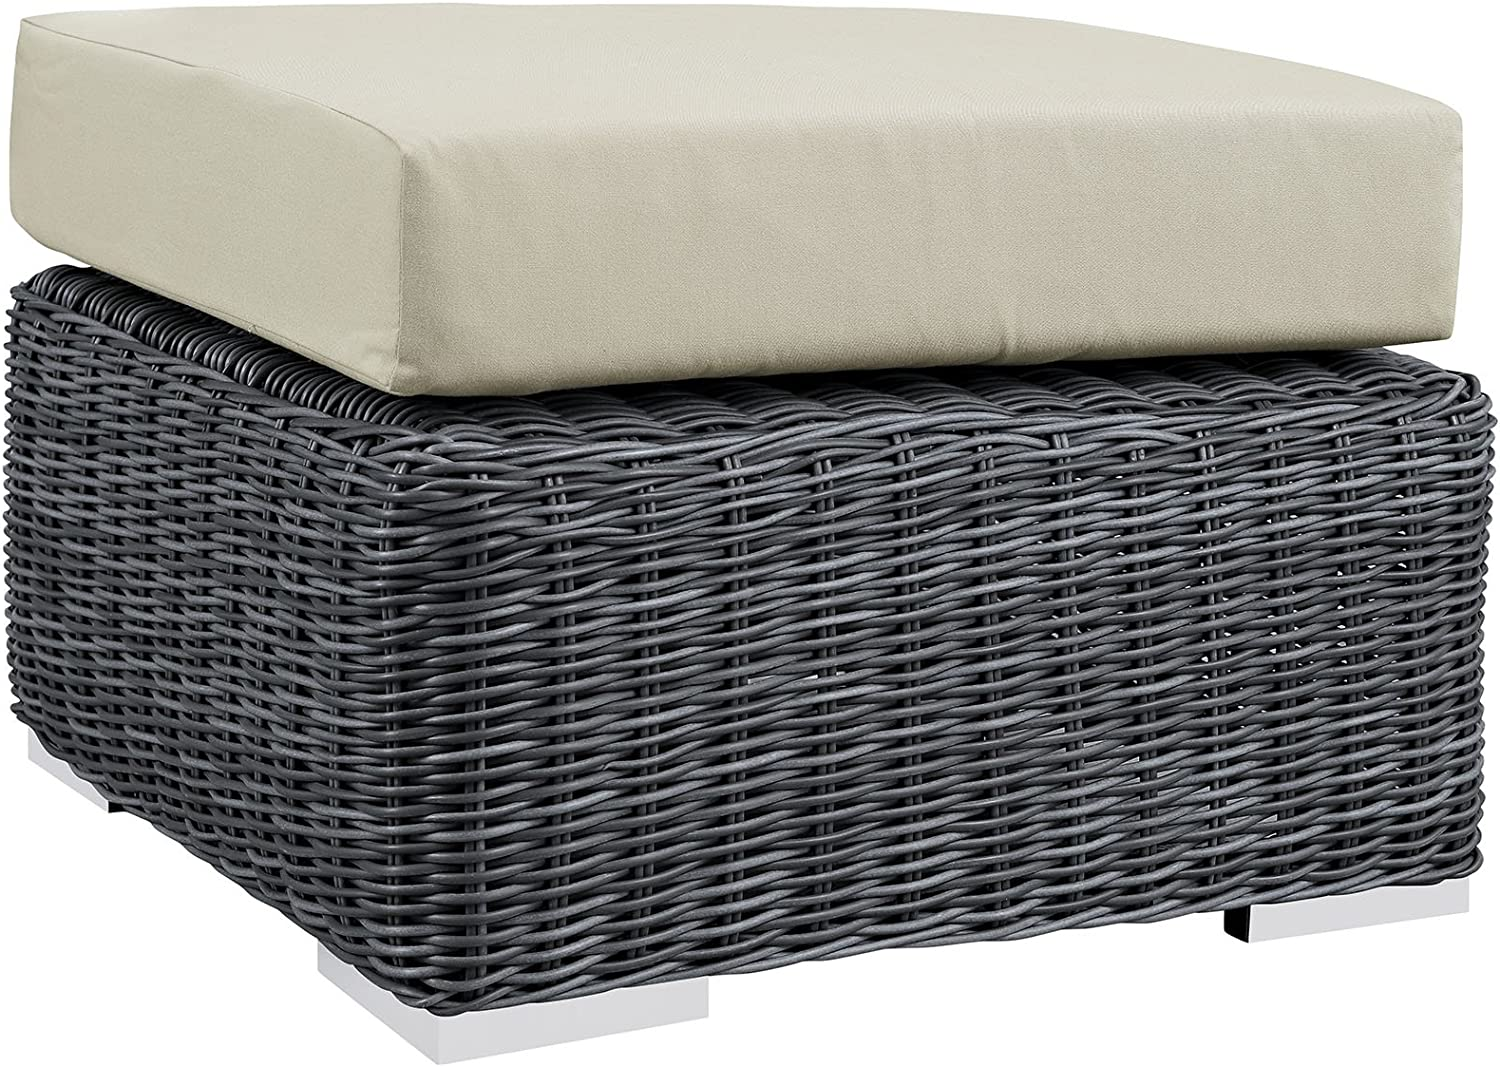 Modern Contemporary Outdoor Free shipping Patio Fabric Synthe Ottoman Max 87% OFF Beige